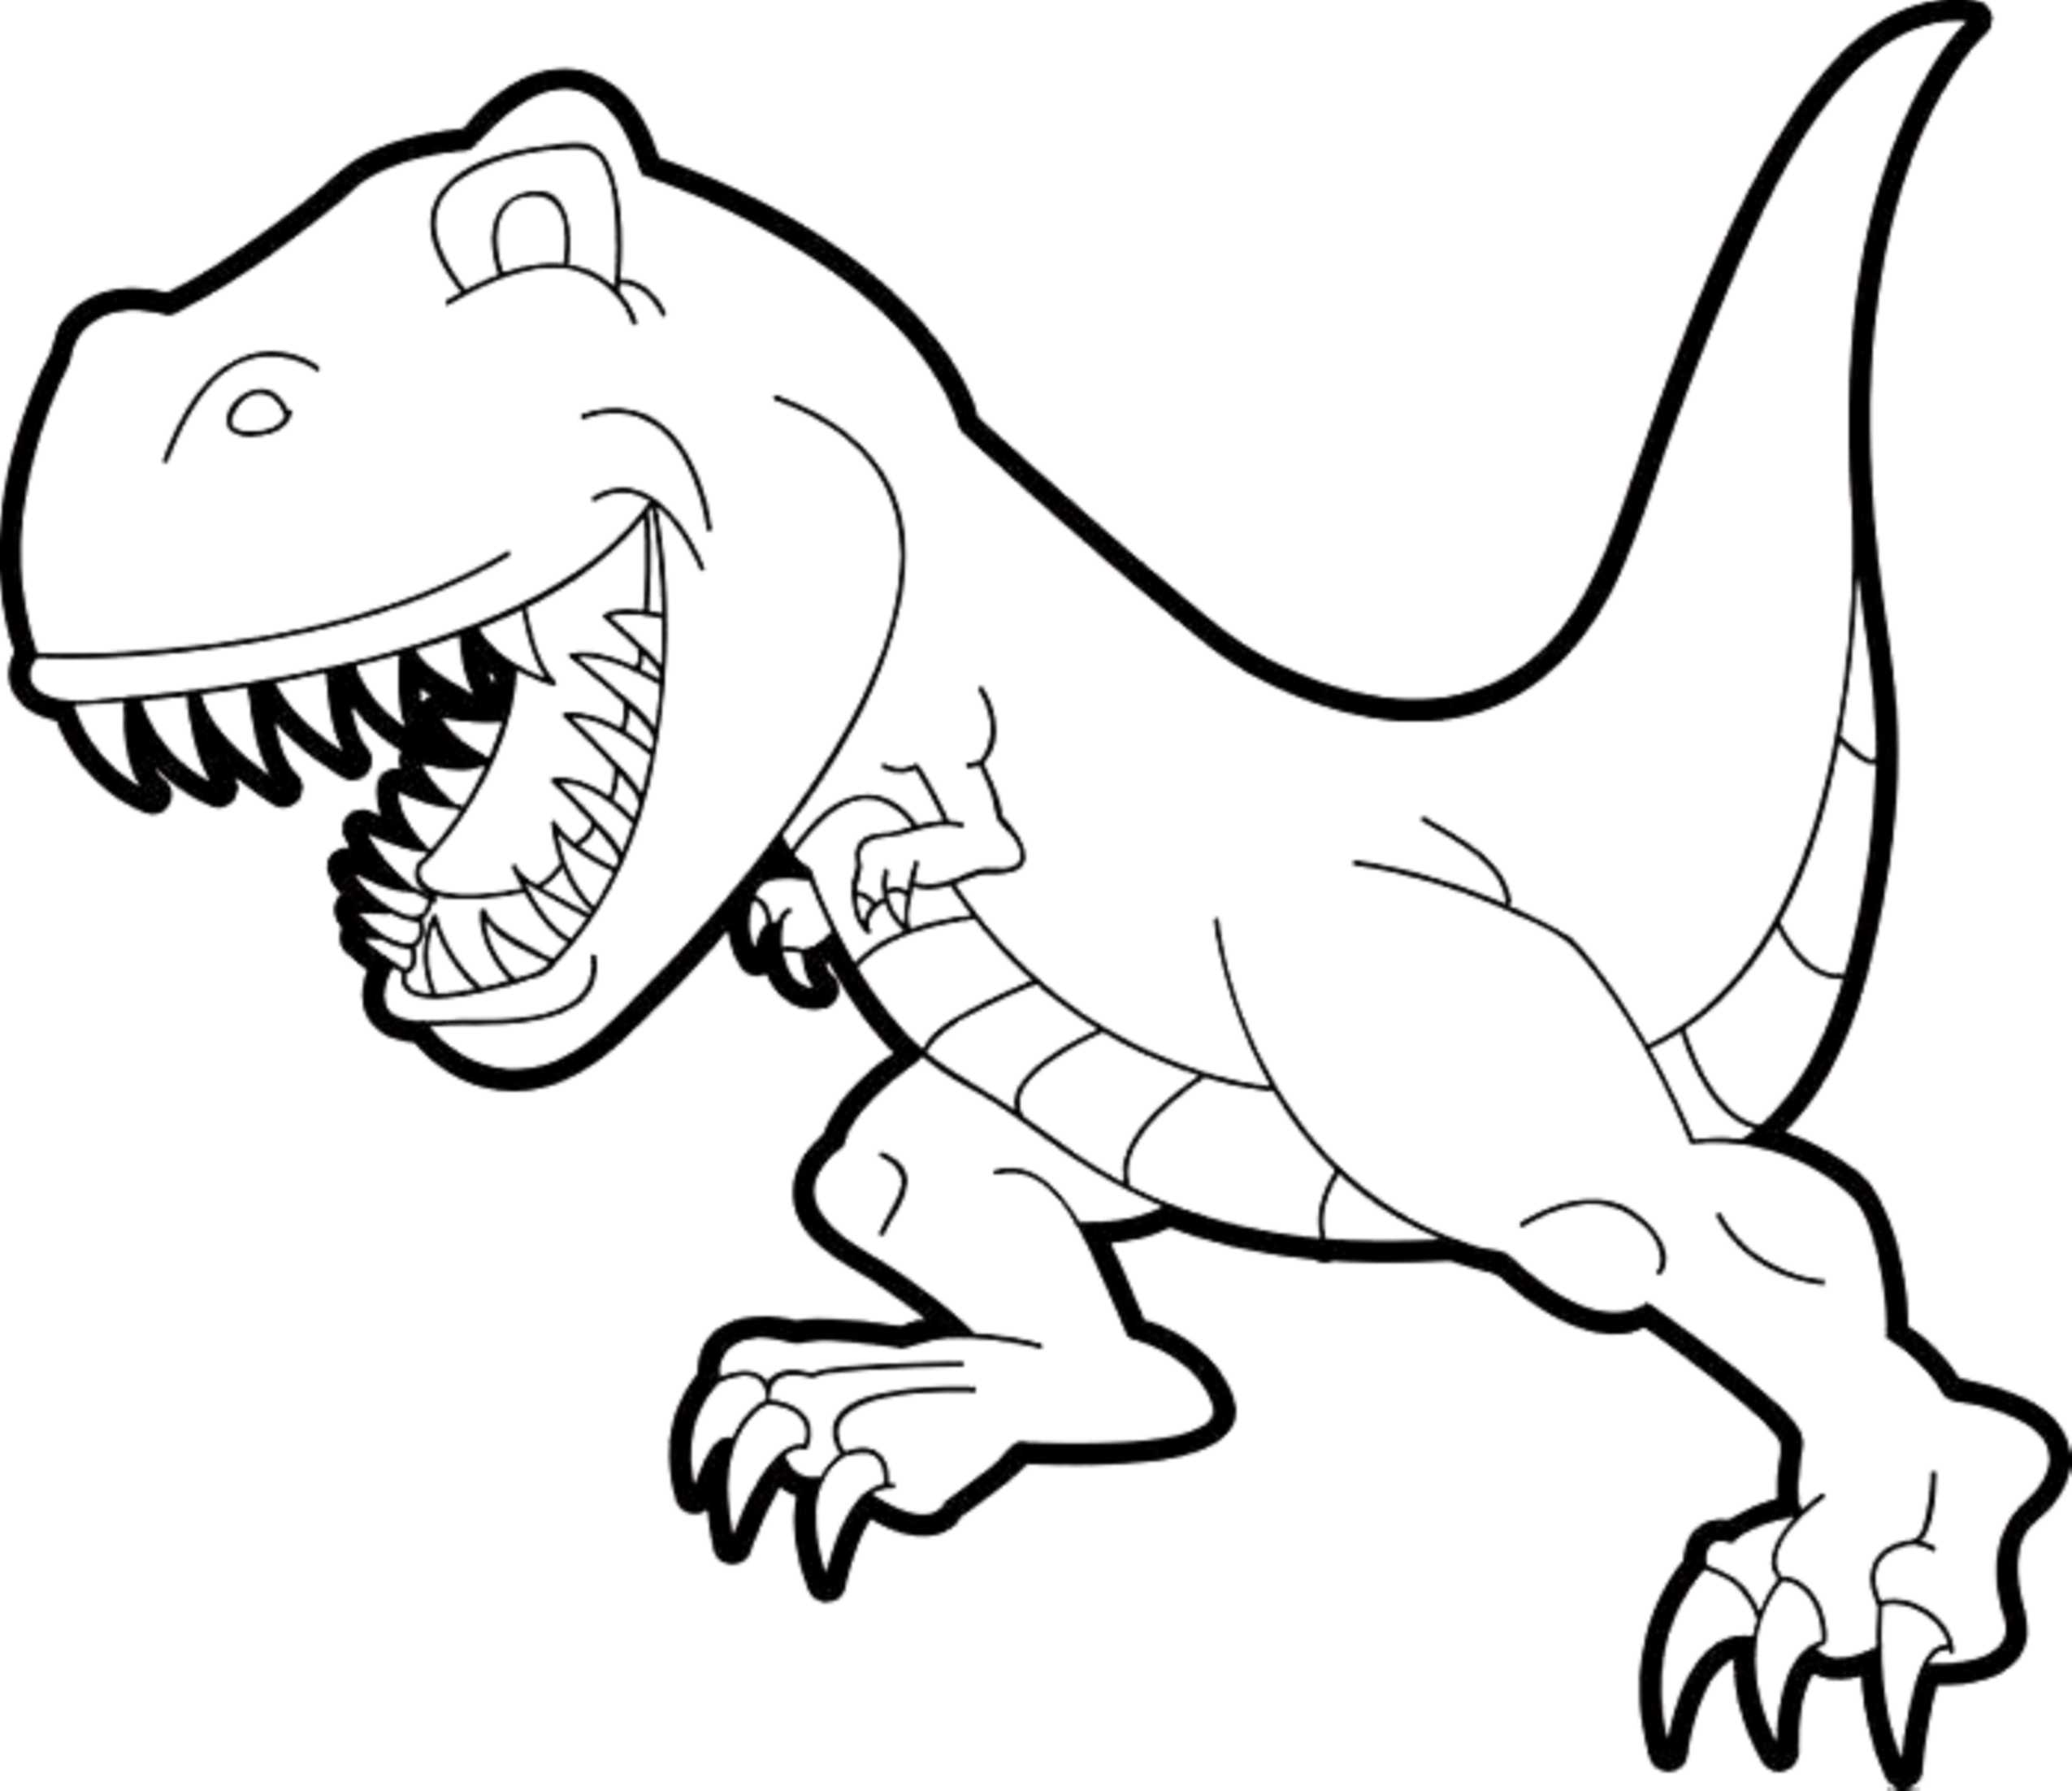 t rex coloring pictures get this printable t rex coloring pages 63679 rex pictures coloring t